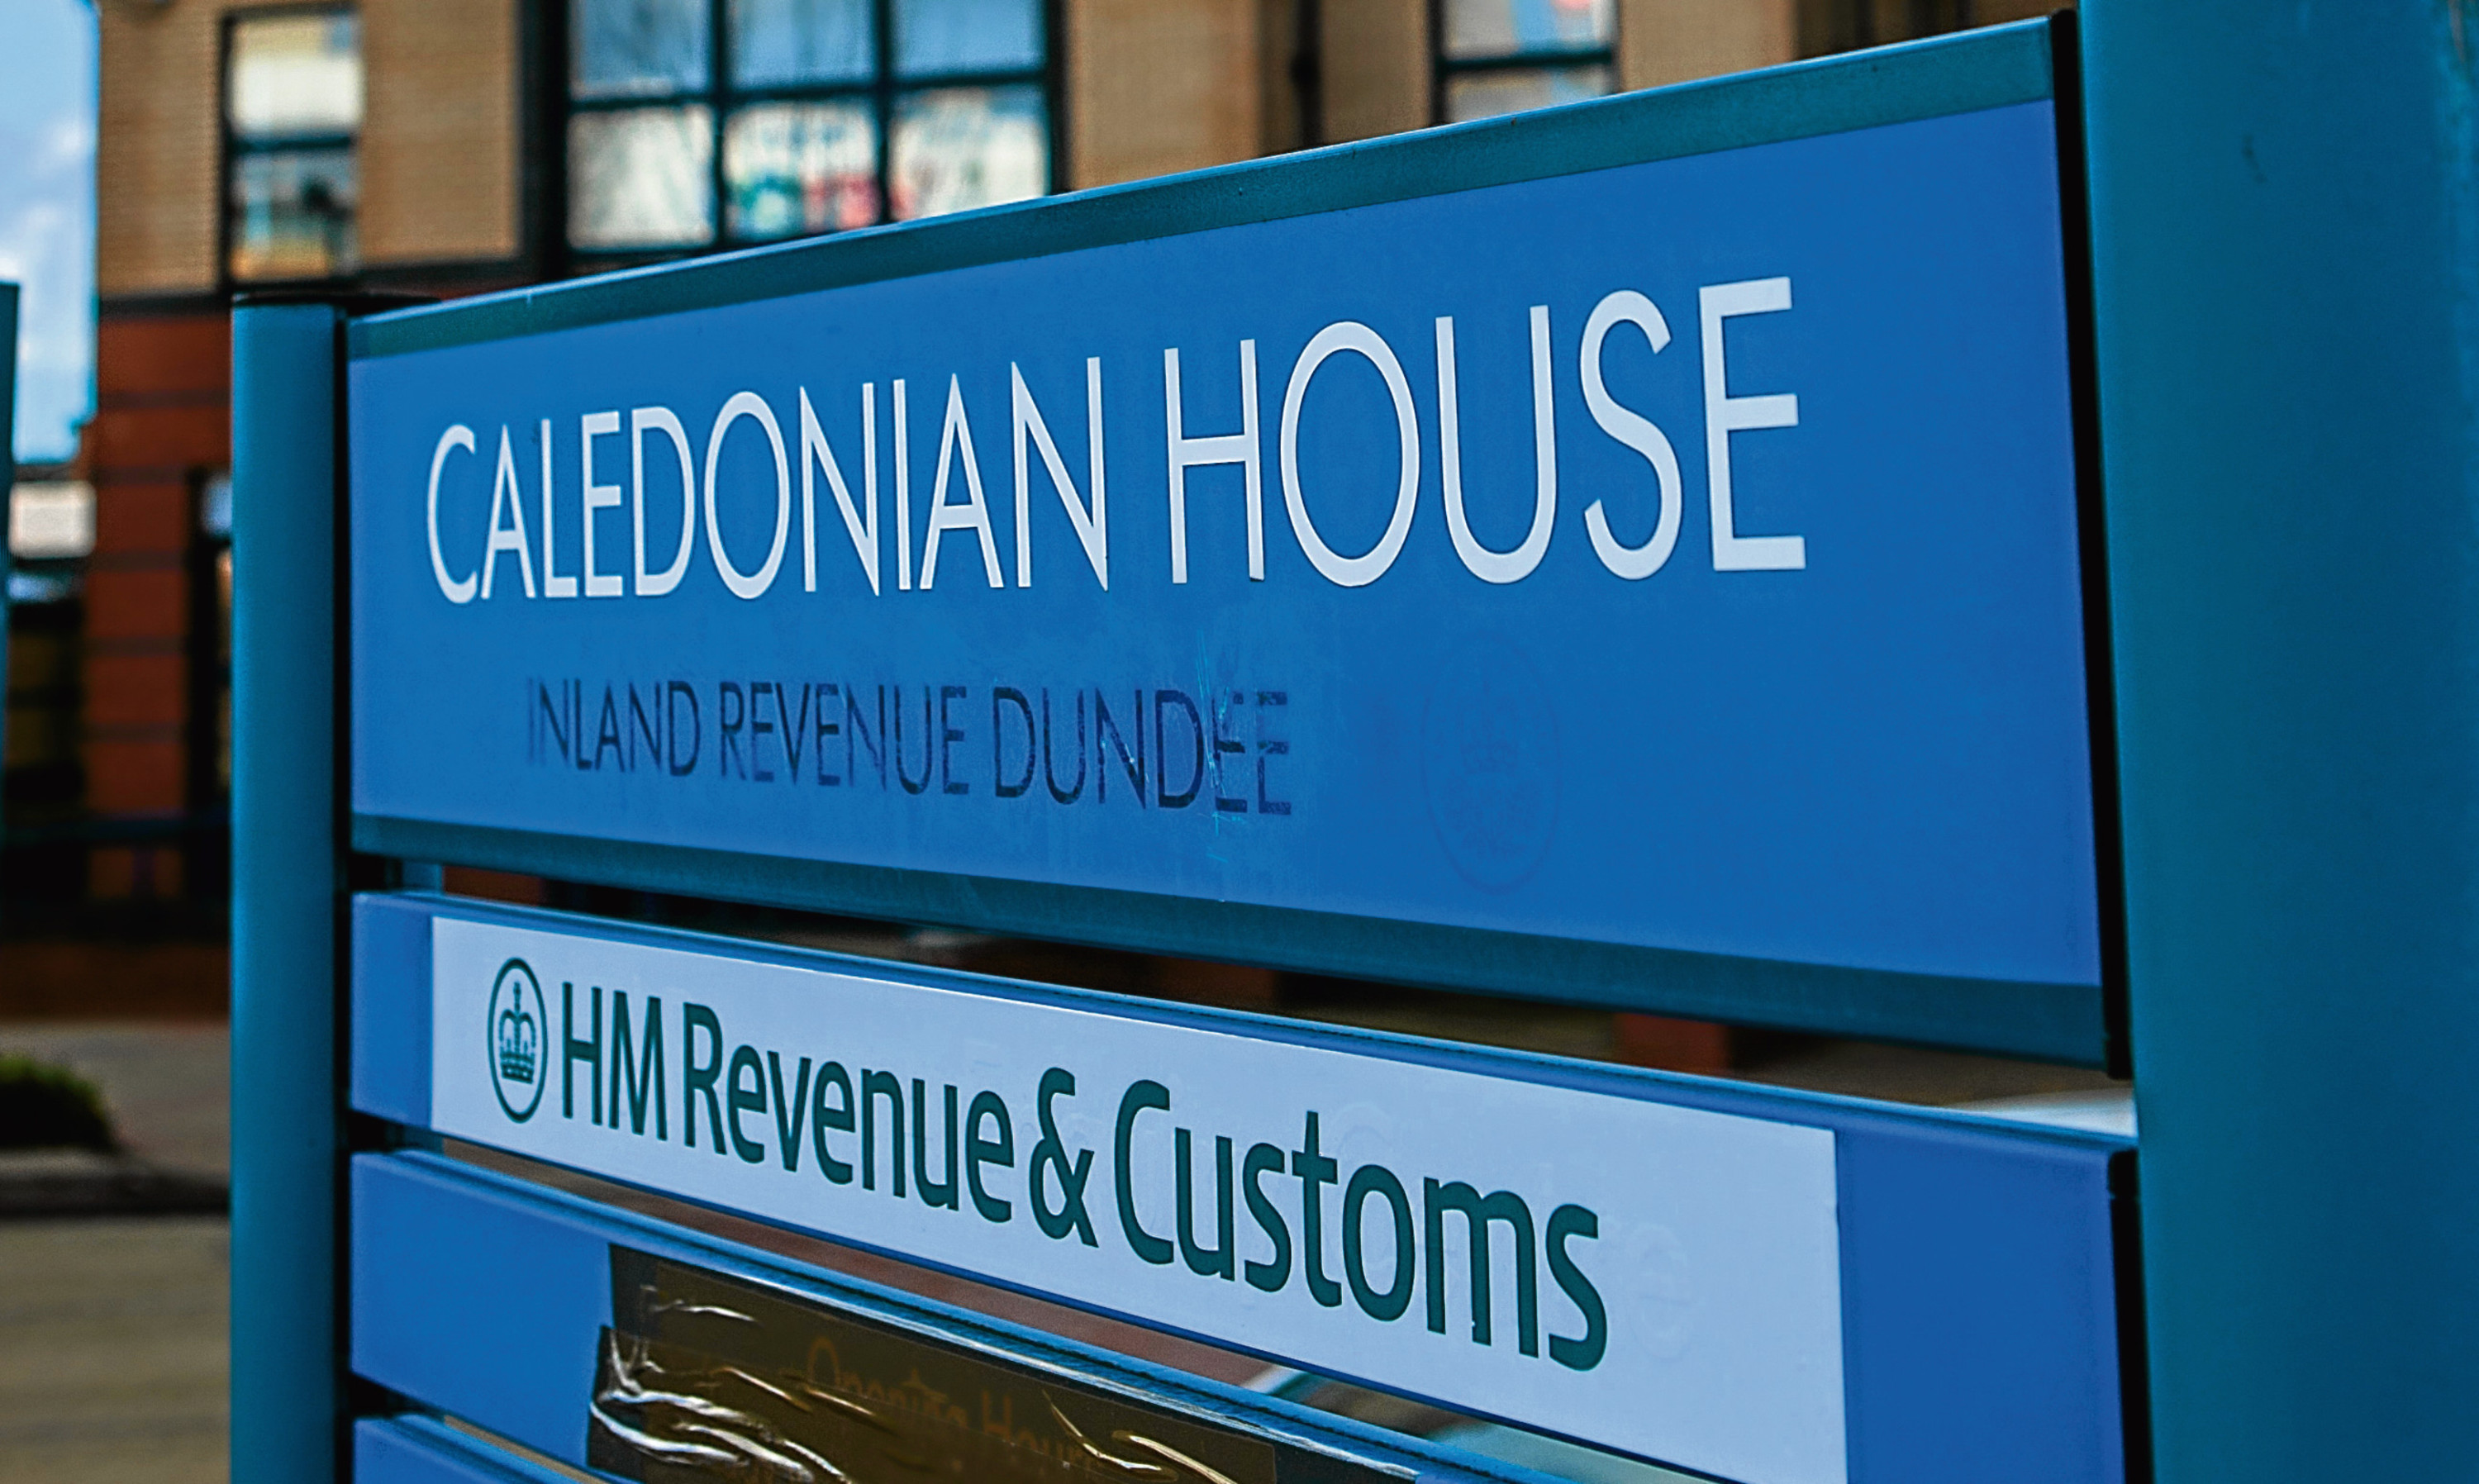 HMRC, Dundee, is under threat of consolidation.